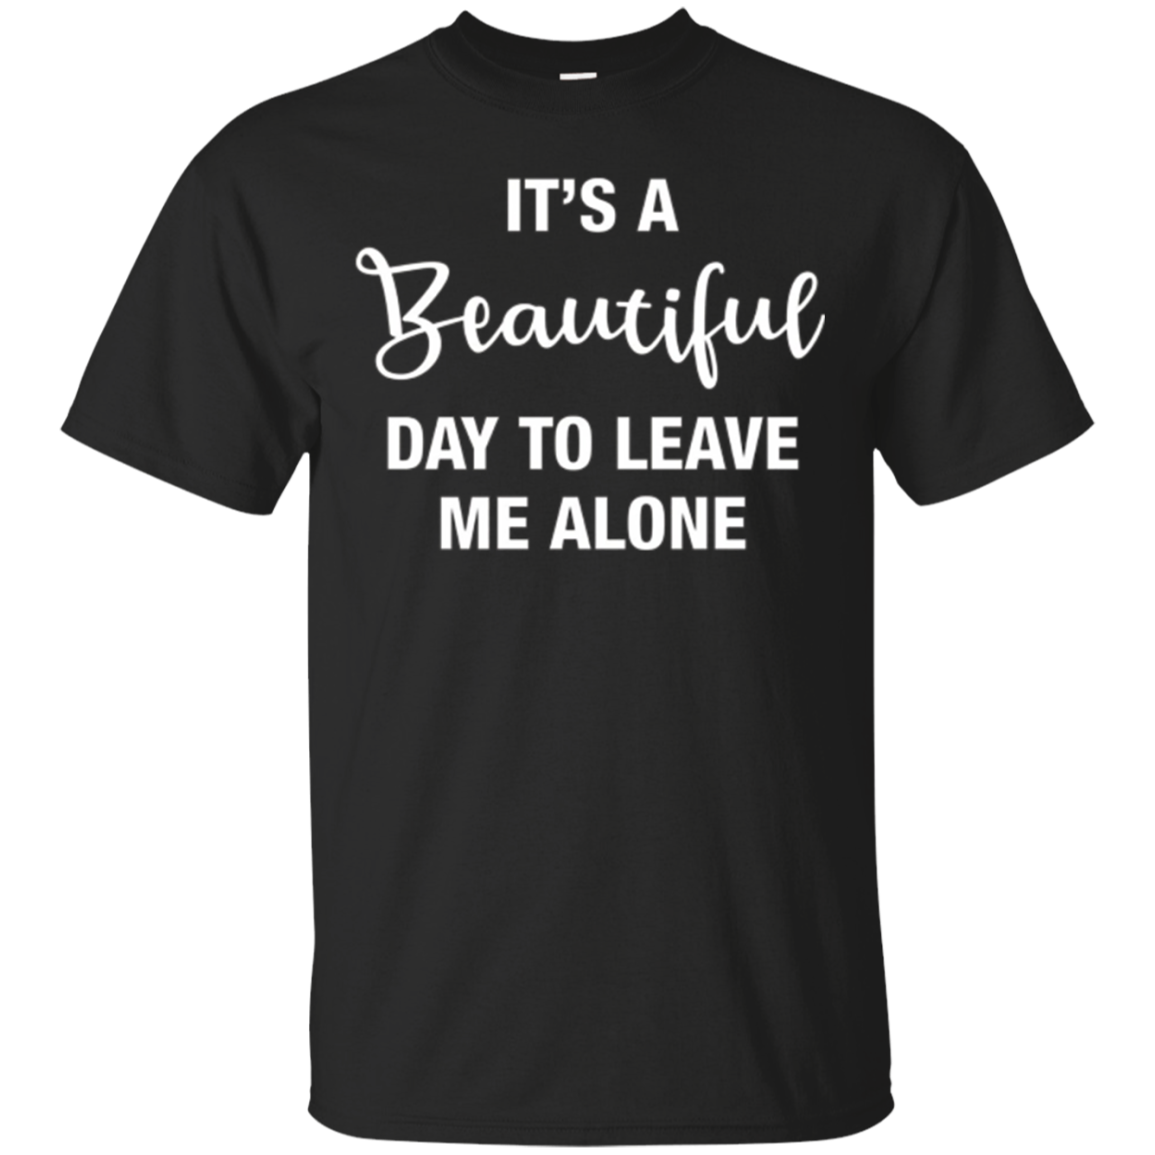 True Life Tees: It's A Beautiful Day To Leave Me Alone Shirt